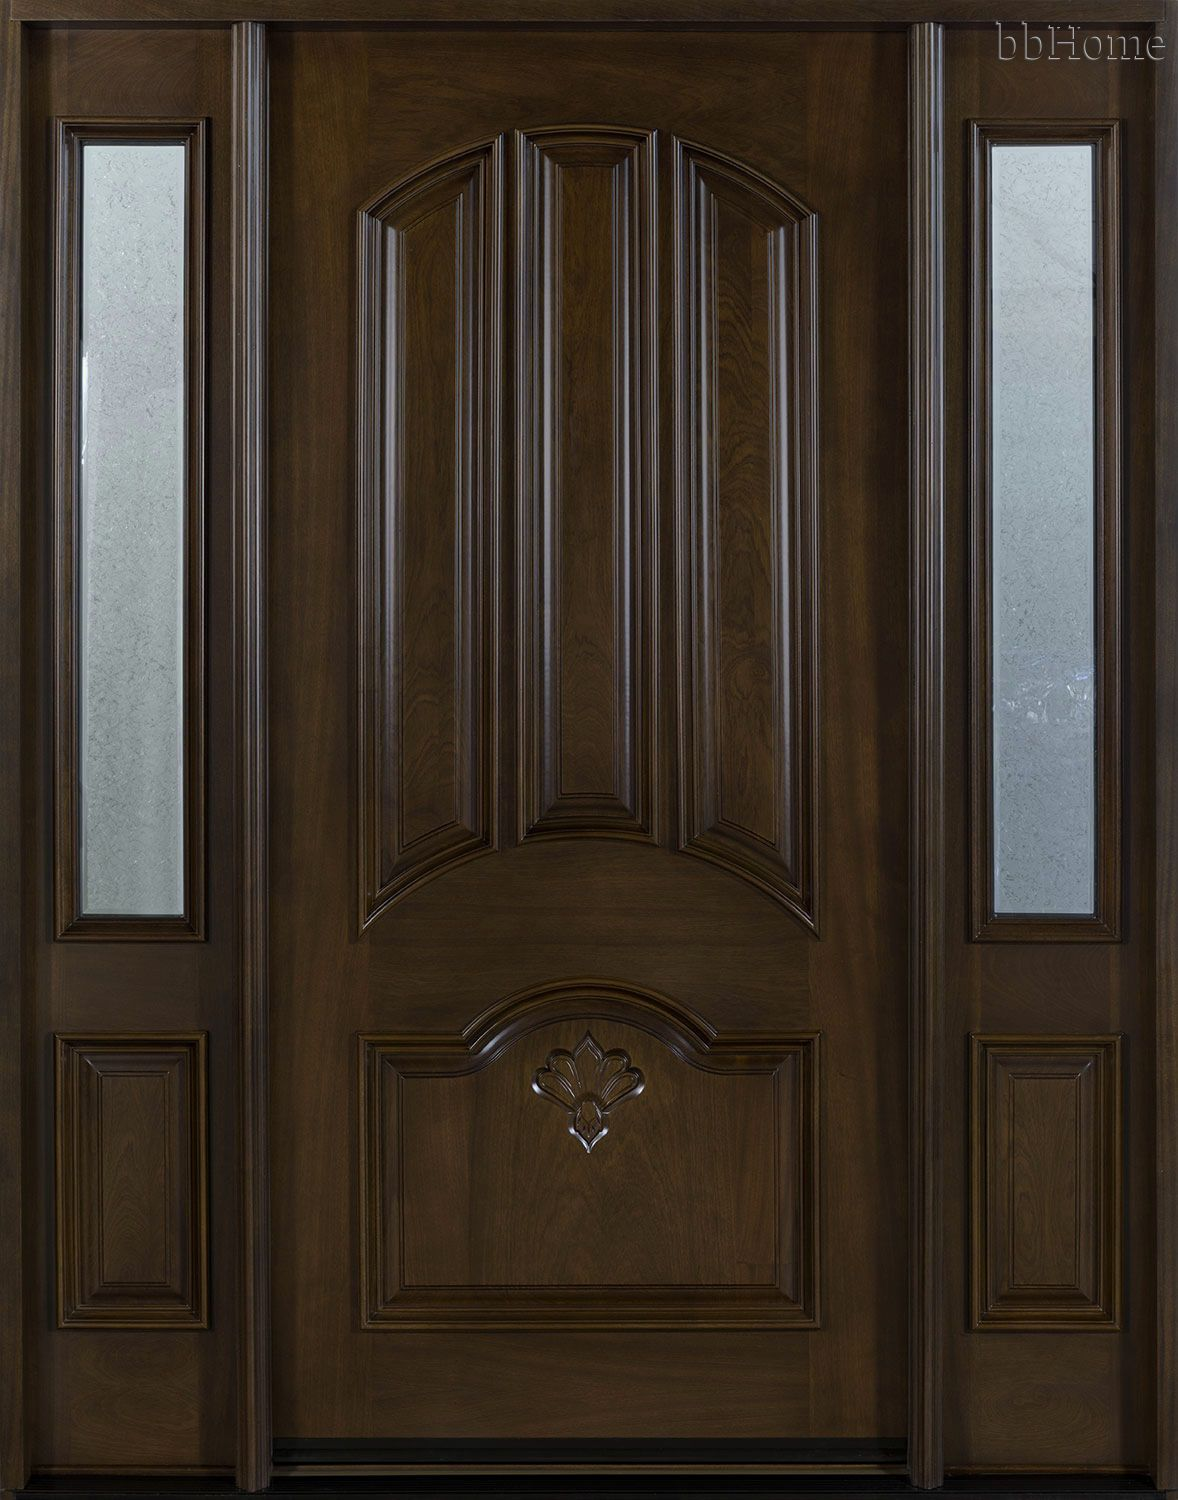 modern door designs for your home sweet home - http://bbhome